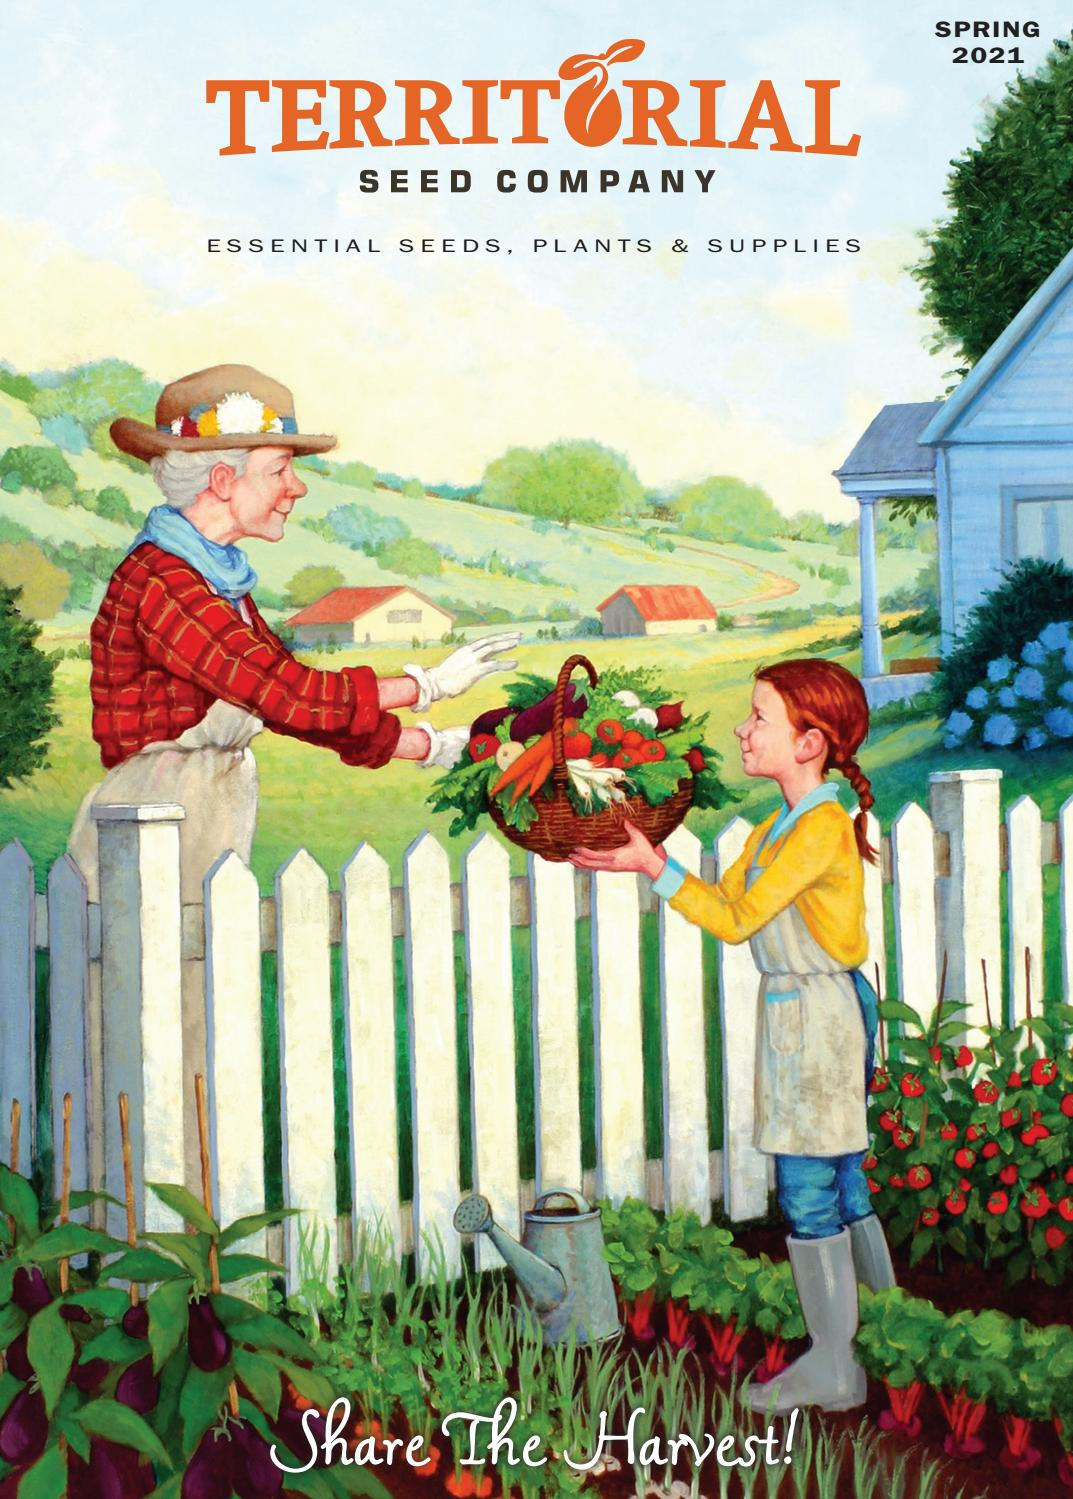 Territorial Seed 2021 Spring Catalog By Territorial Seed Company Issuu